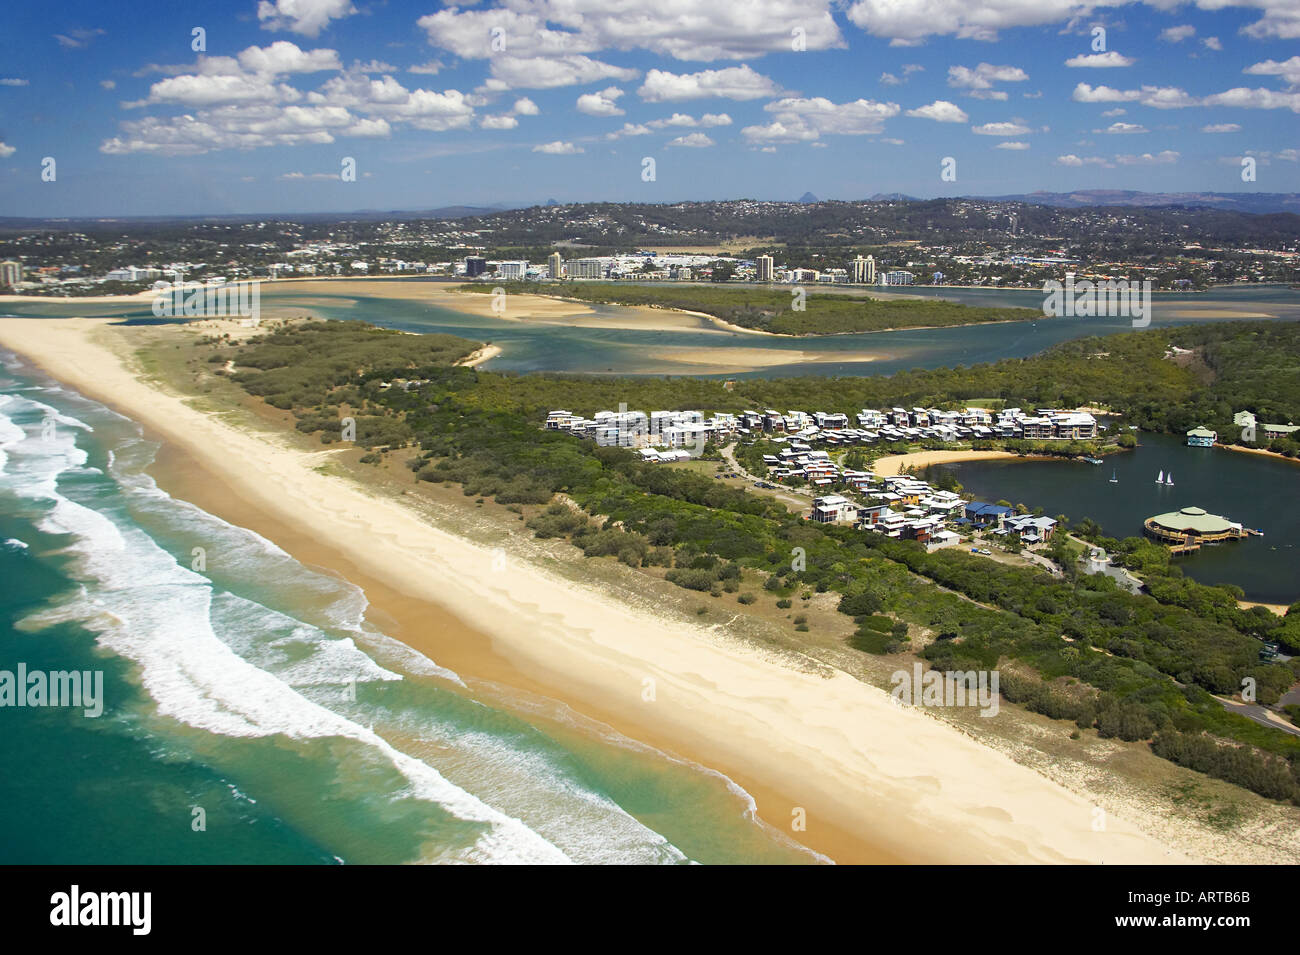 Maroochy River Sunshine Coast Queensland Australia aerial ... on map of misty mountains, map of hobbiton, map of rivendell, map of edoras, map of lothlorien, map of arnor, map of mount doom, map of mordor, map of dunland, map of scott, map of moria, map of colo river, map of lonely mountain, map of angmar, map of minas tirith, map of annuminas, map of trollshaws, map of nimh, map of isengard, map of gondolin,